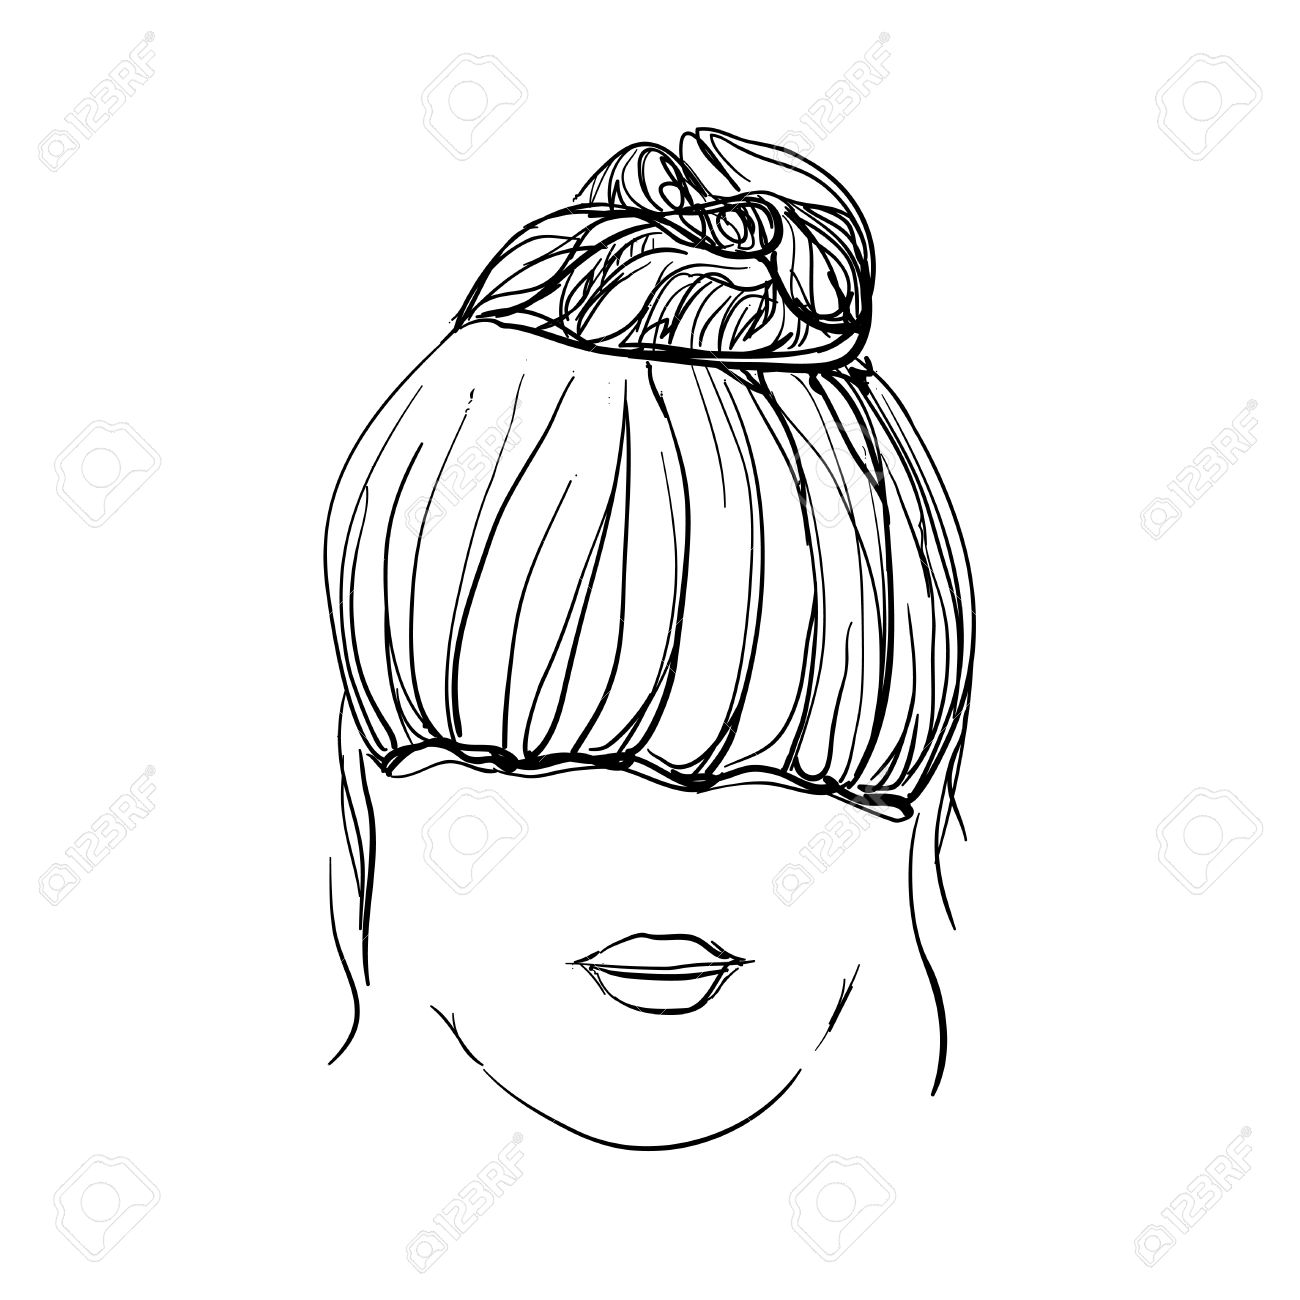 girl with messy bun hand drawn hairstyle royalty free cliparts